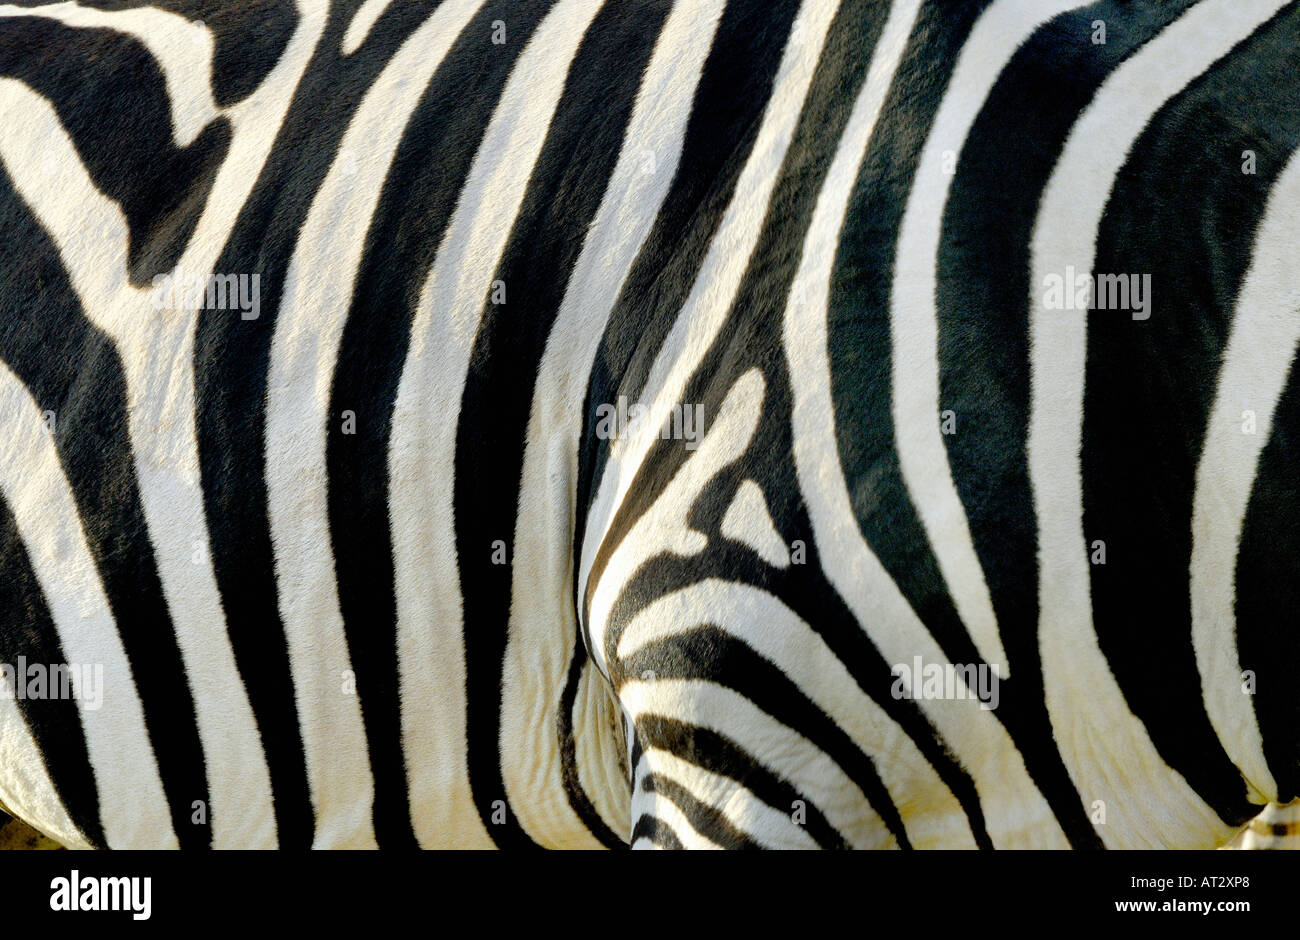 ZEBRA STRIPES PATTERN Stock Photo